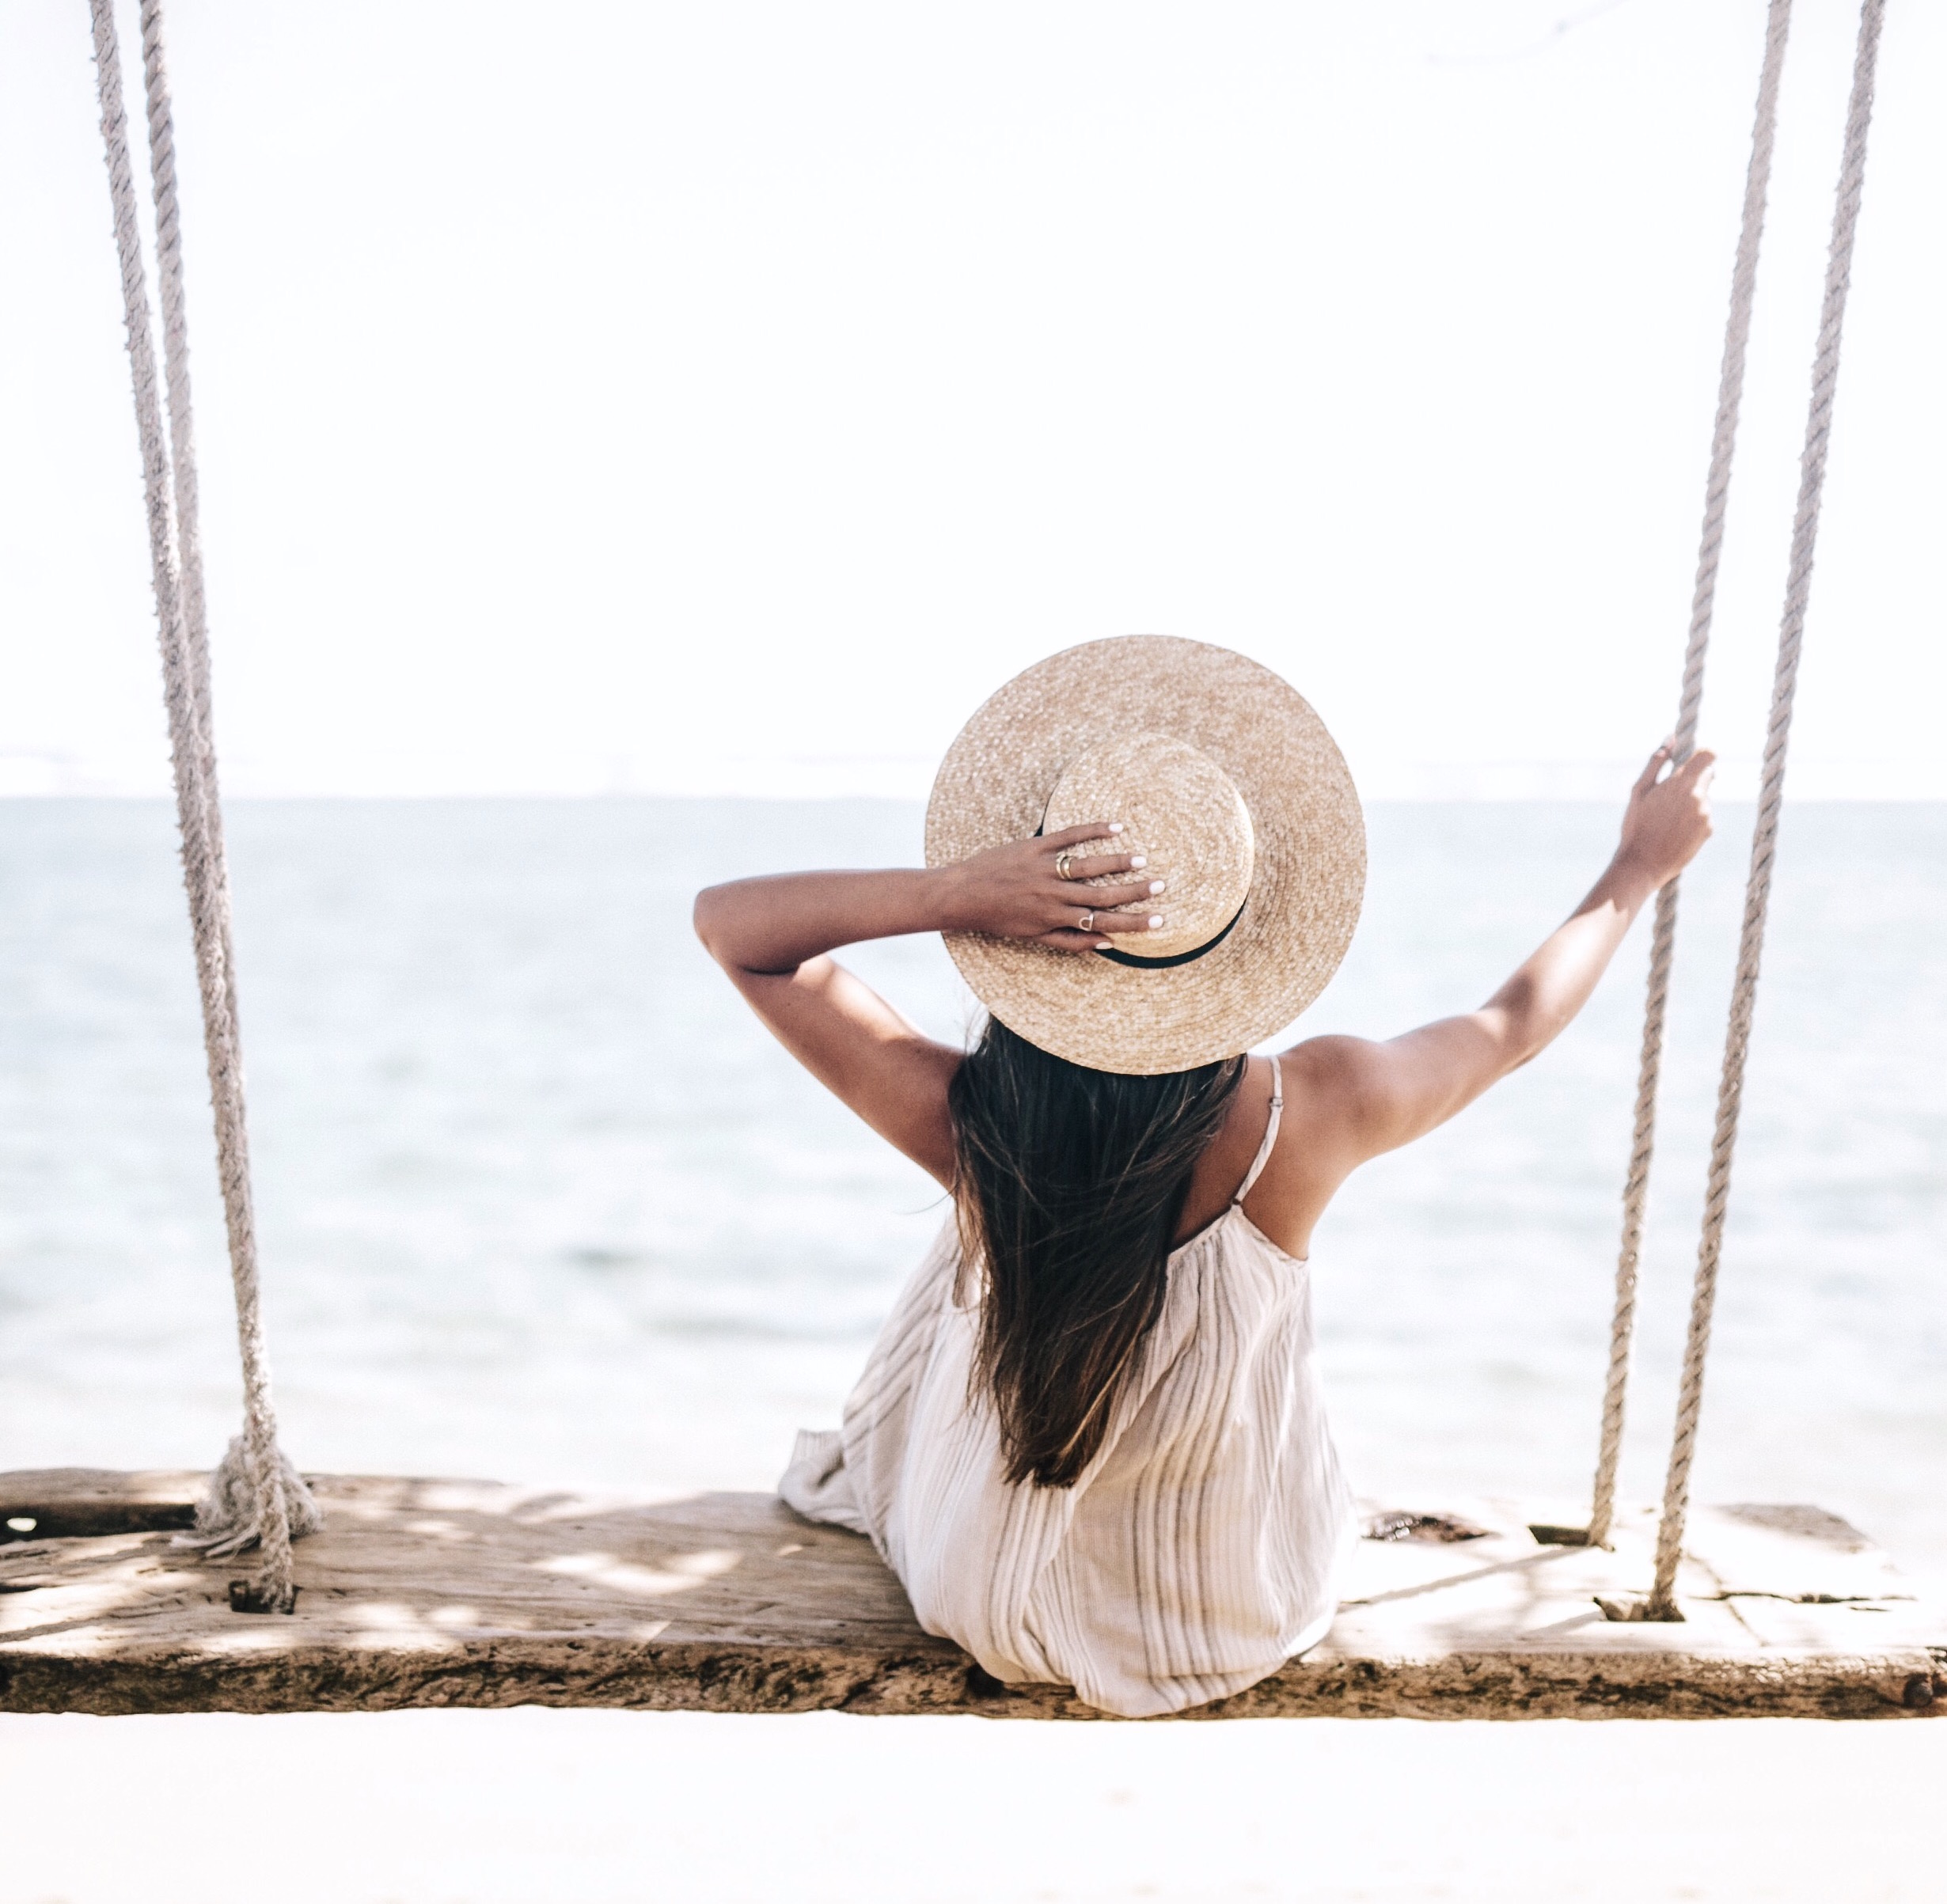 Straw Boater Hat | San Diego Hat Company | $500 Gift Card Giveaway | Travel Blogger | Travel Inspiration | Beach Swing on Oahu | via elanaloo.com